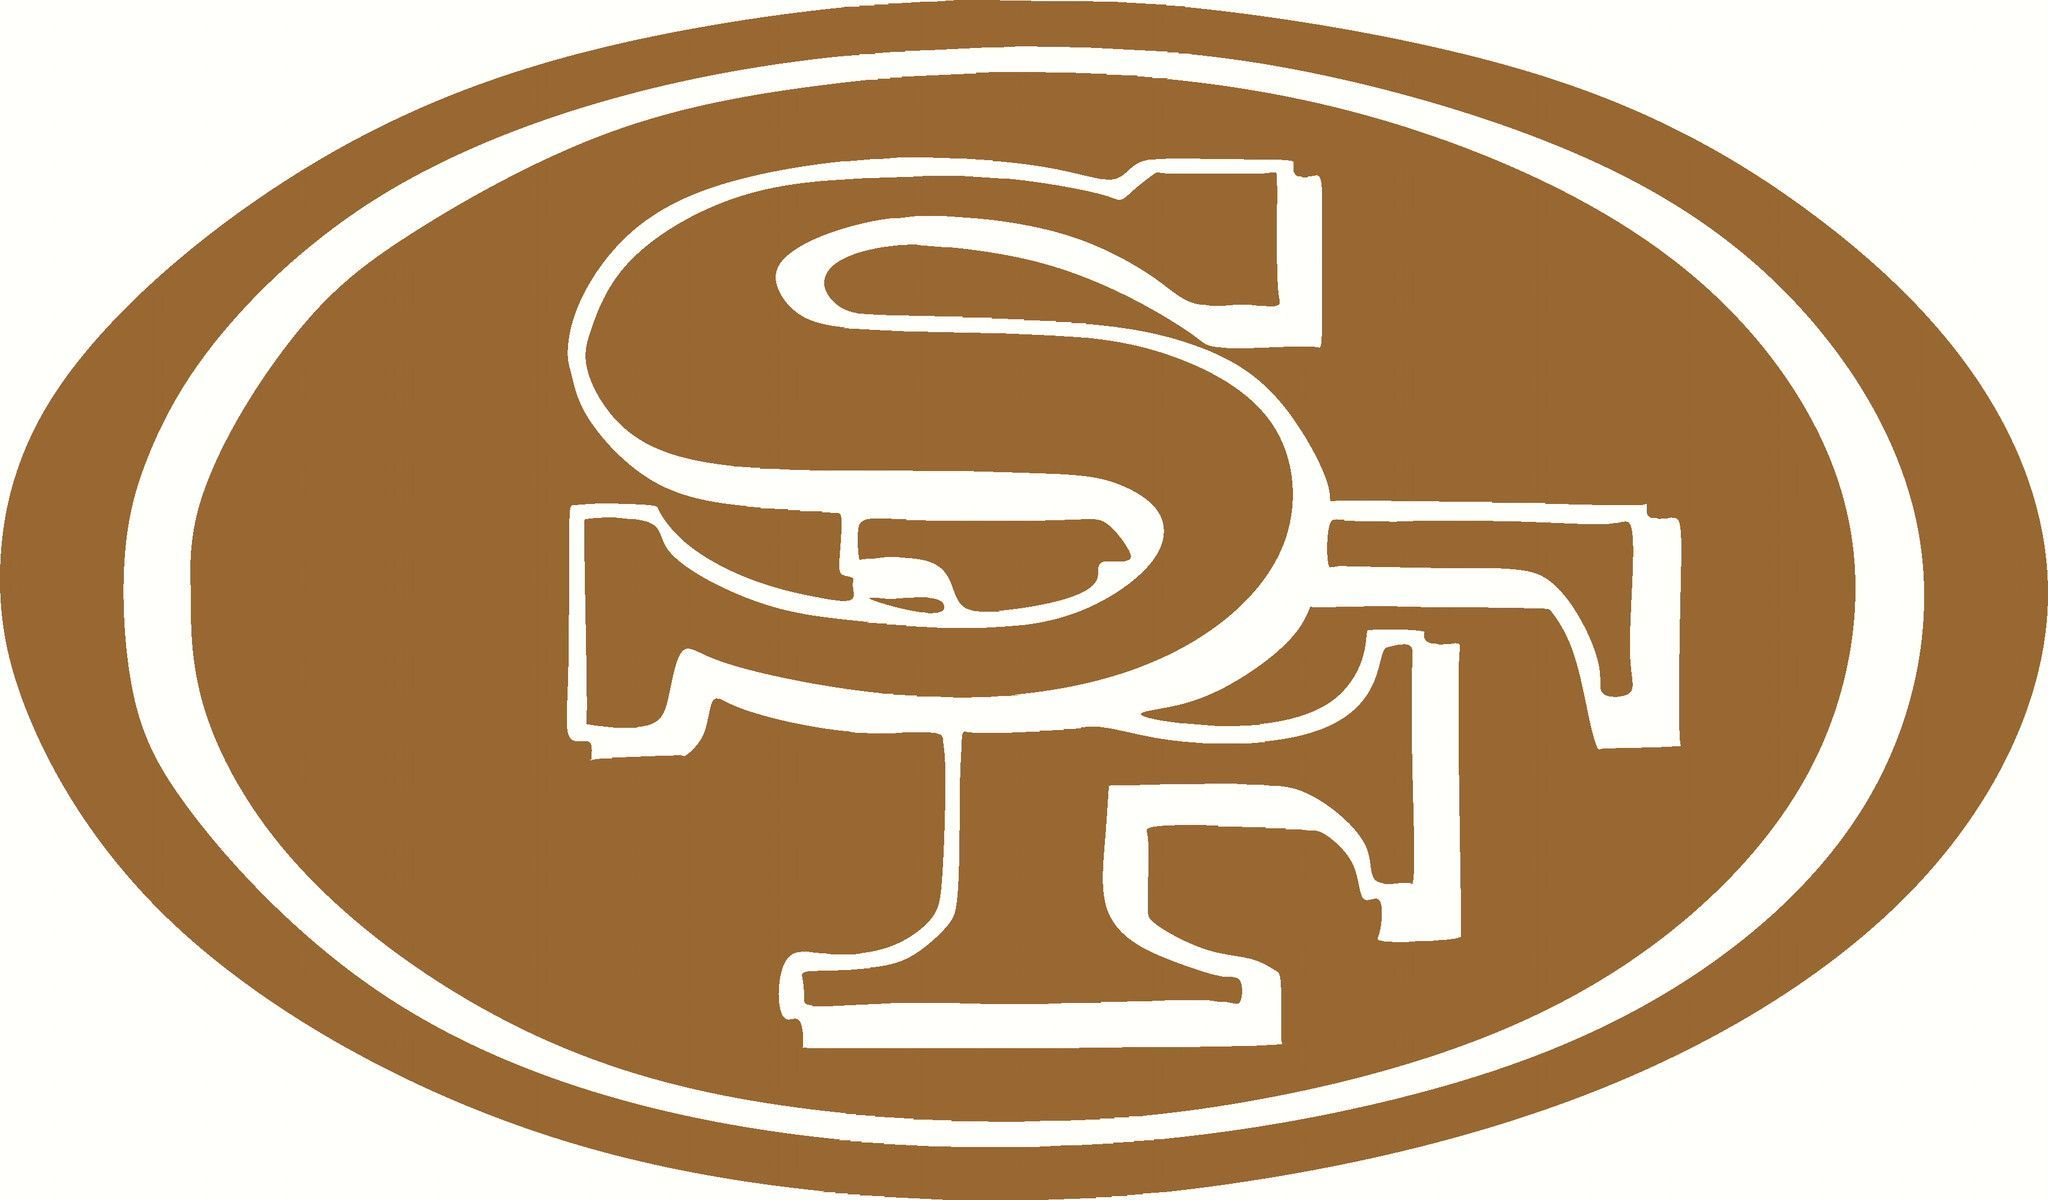 San Francisco 49ers Logo Vinyl Cut Out Decal Choose Your